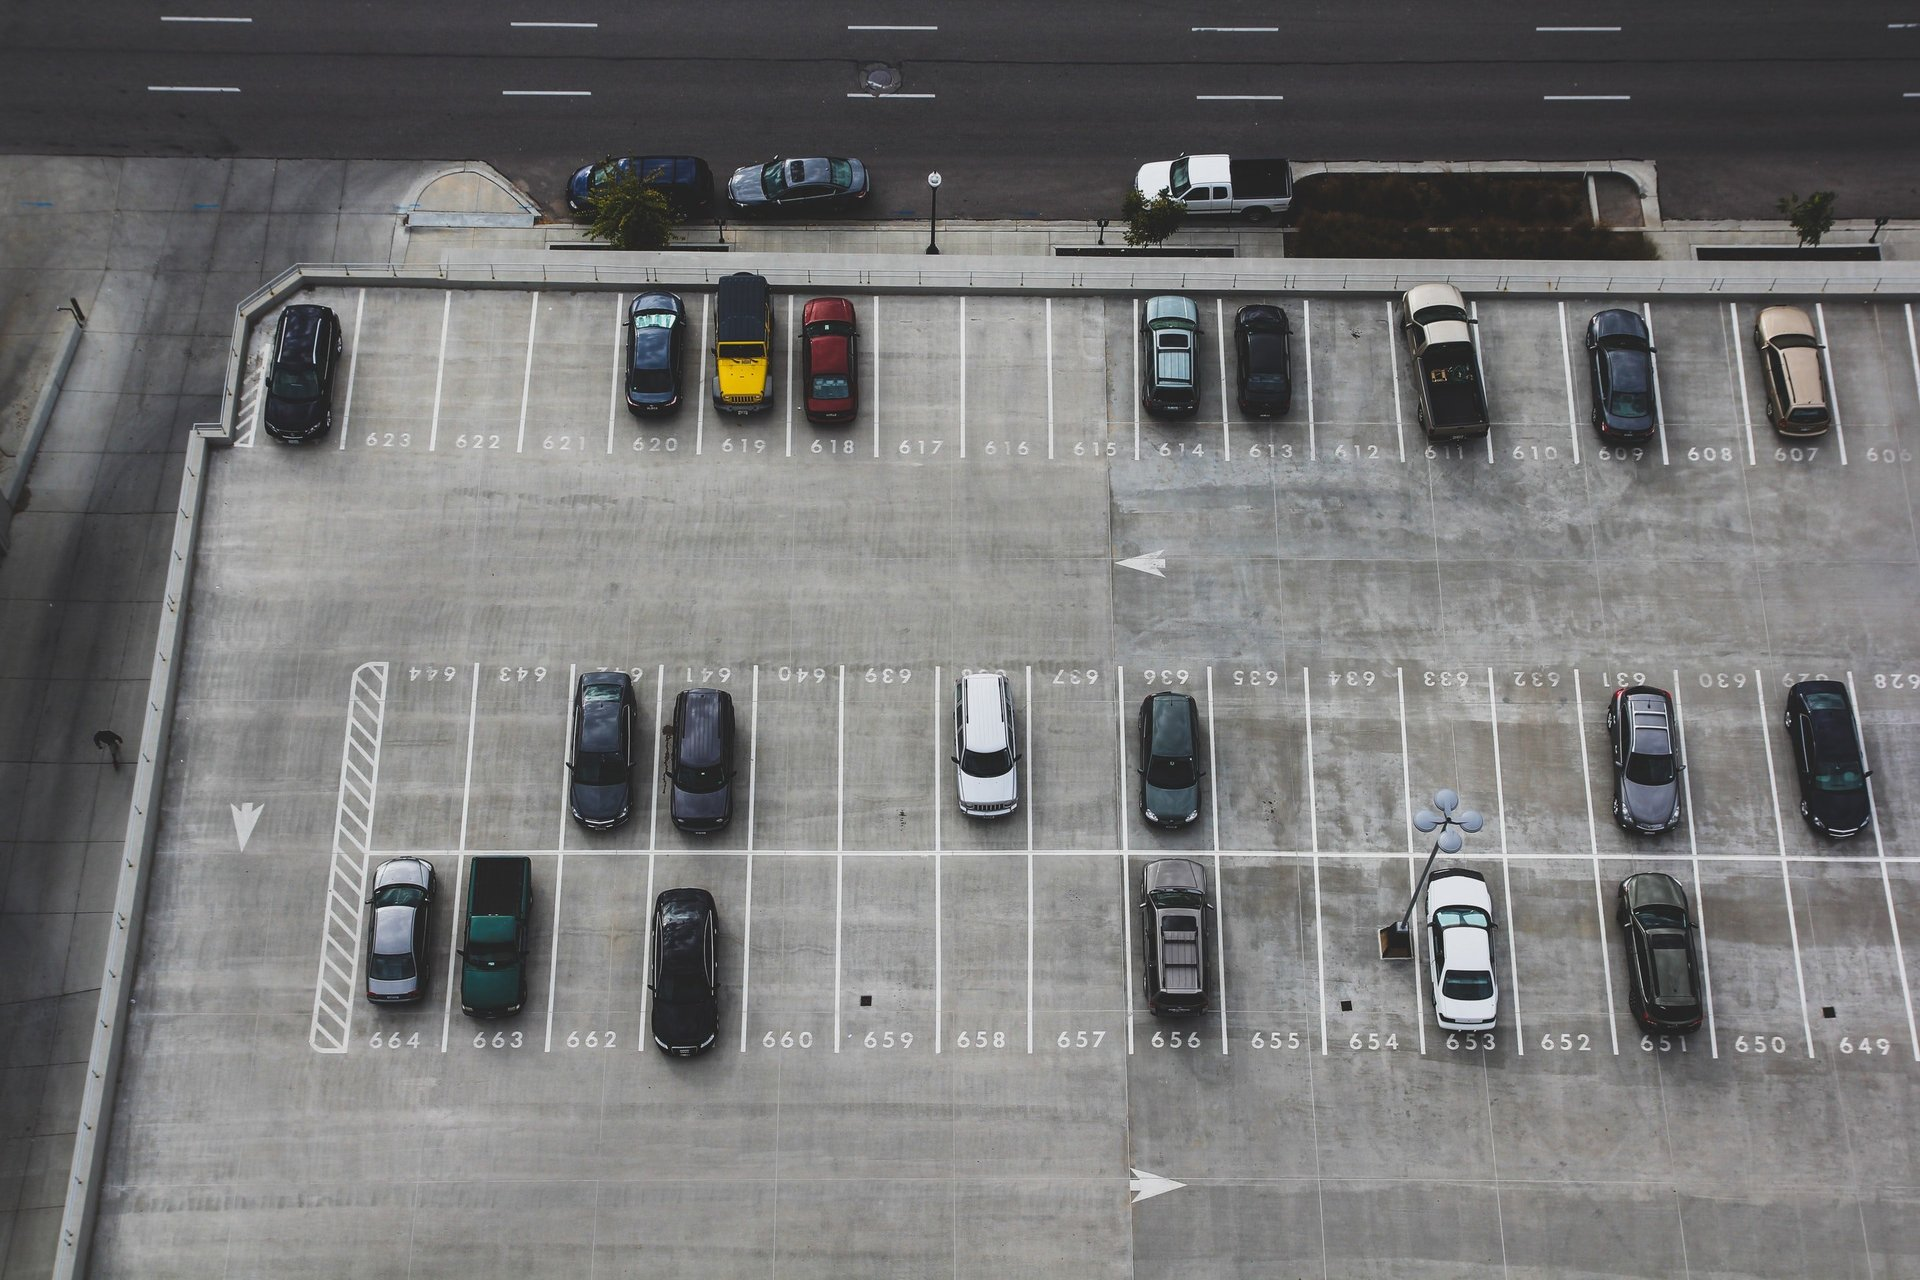 Parking design and layout